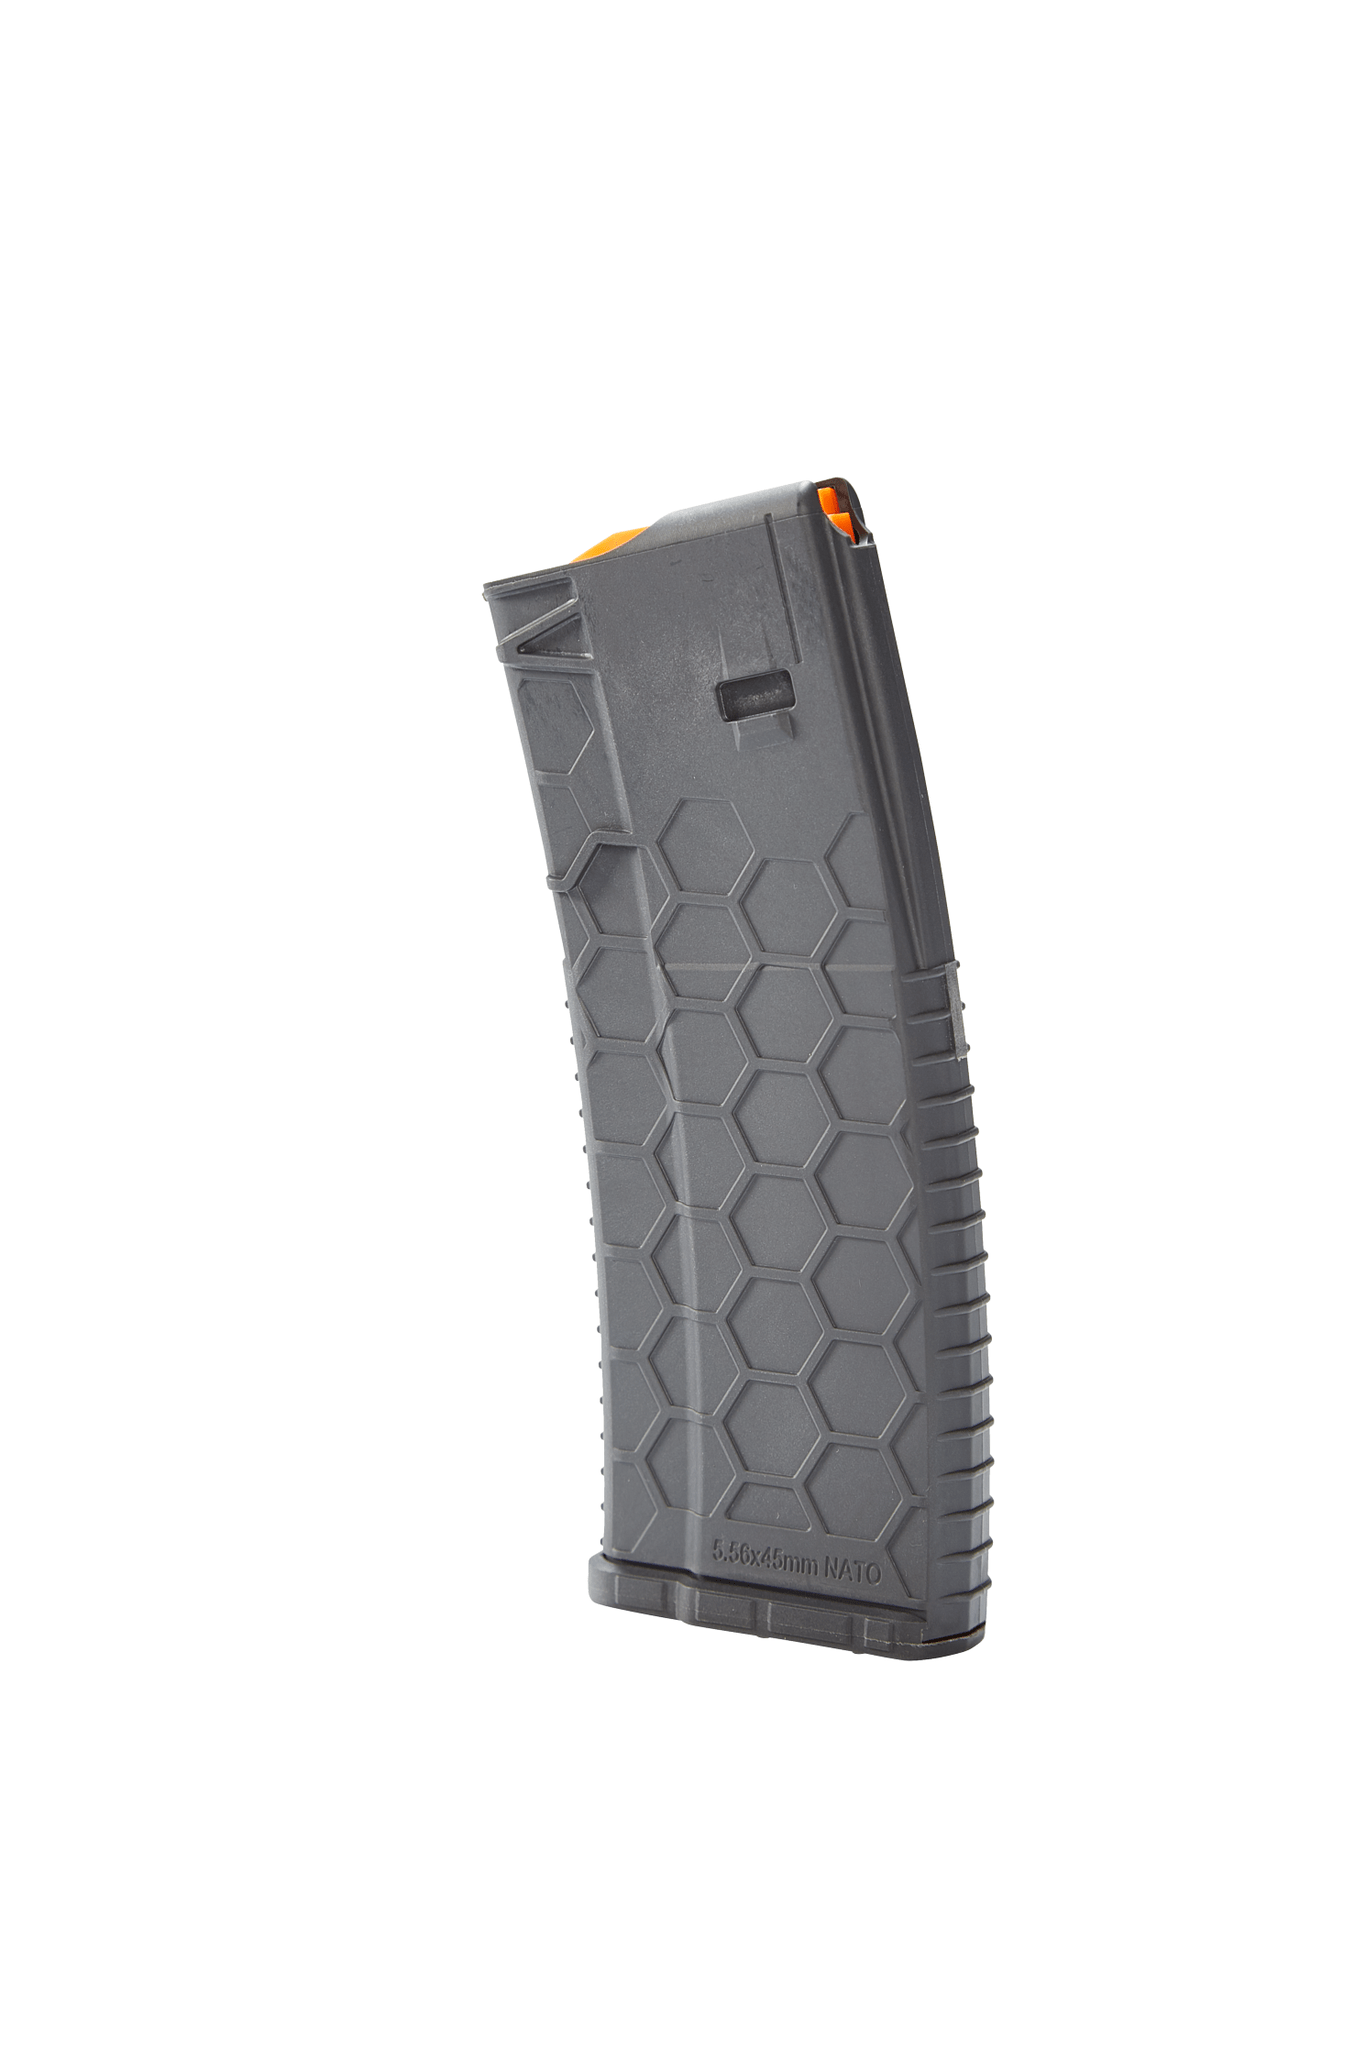 Hexmag HX Series 2, Standard Capacity AR-15 Magazine (Options)